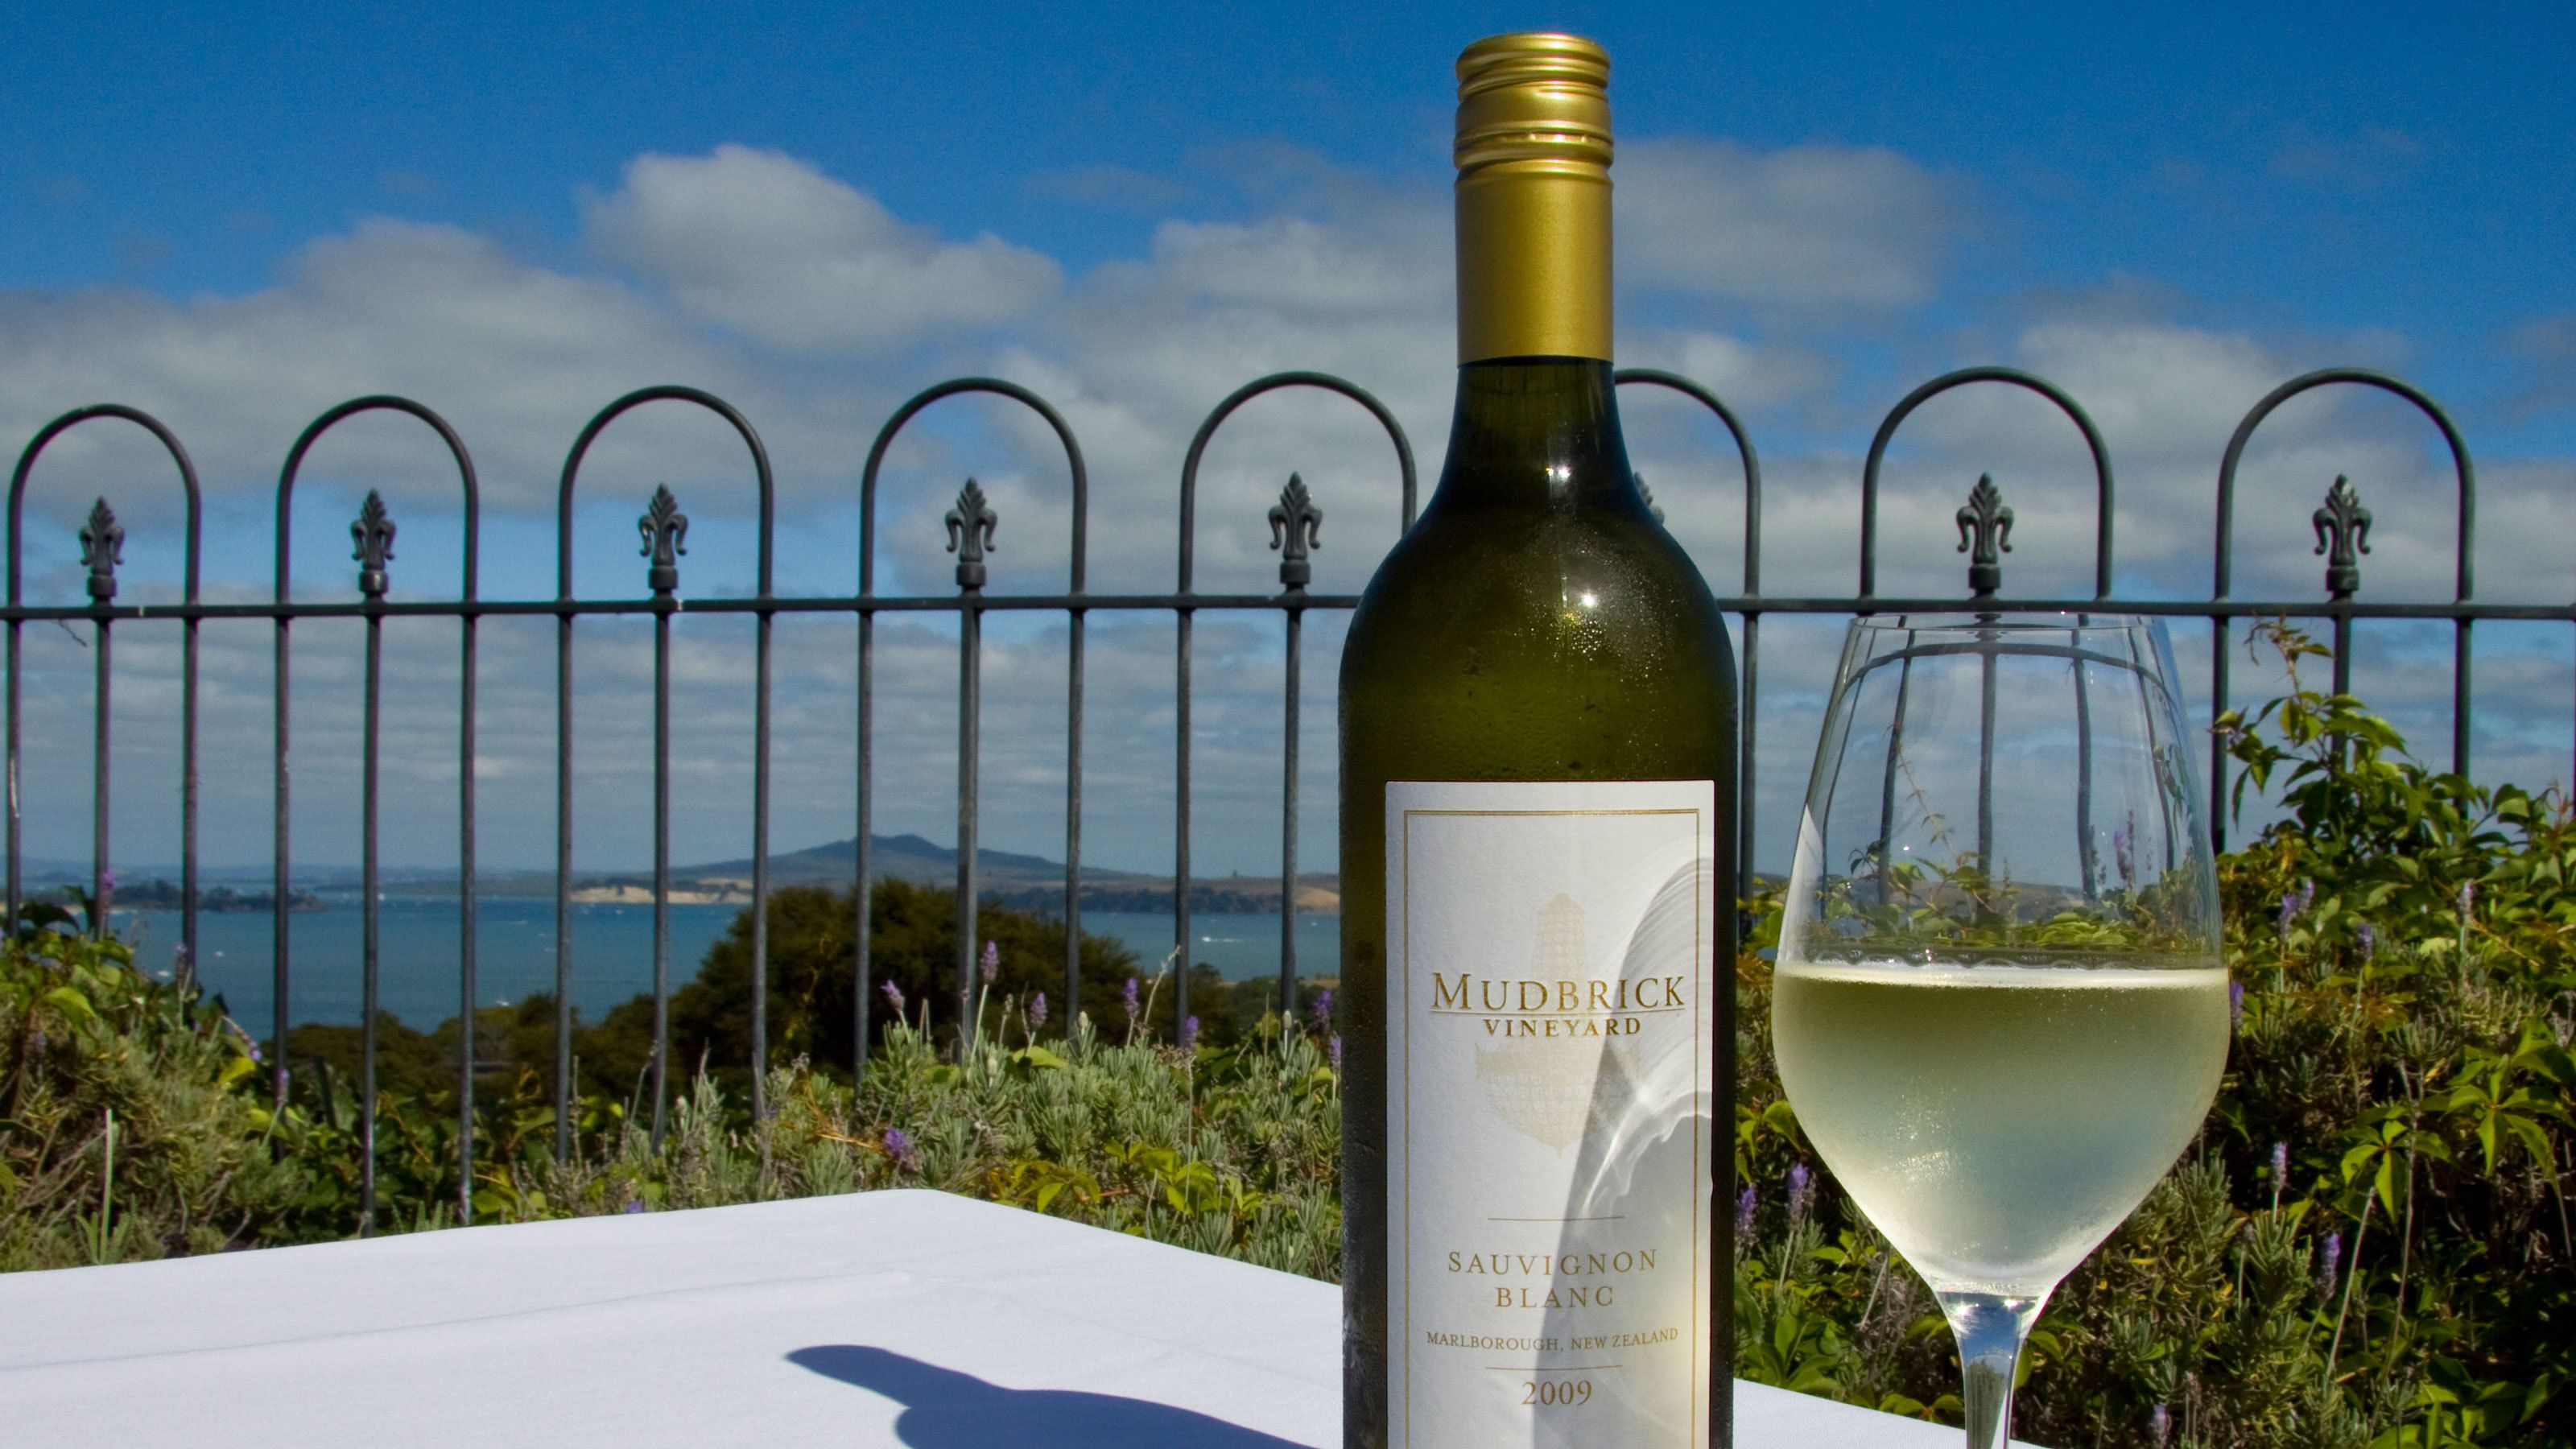 Bottle and glass of white wine at a vineyard on Waiheka Island